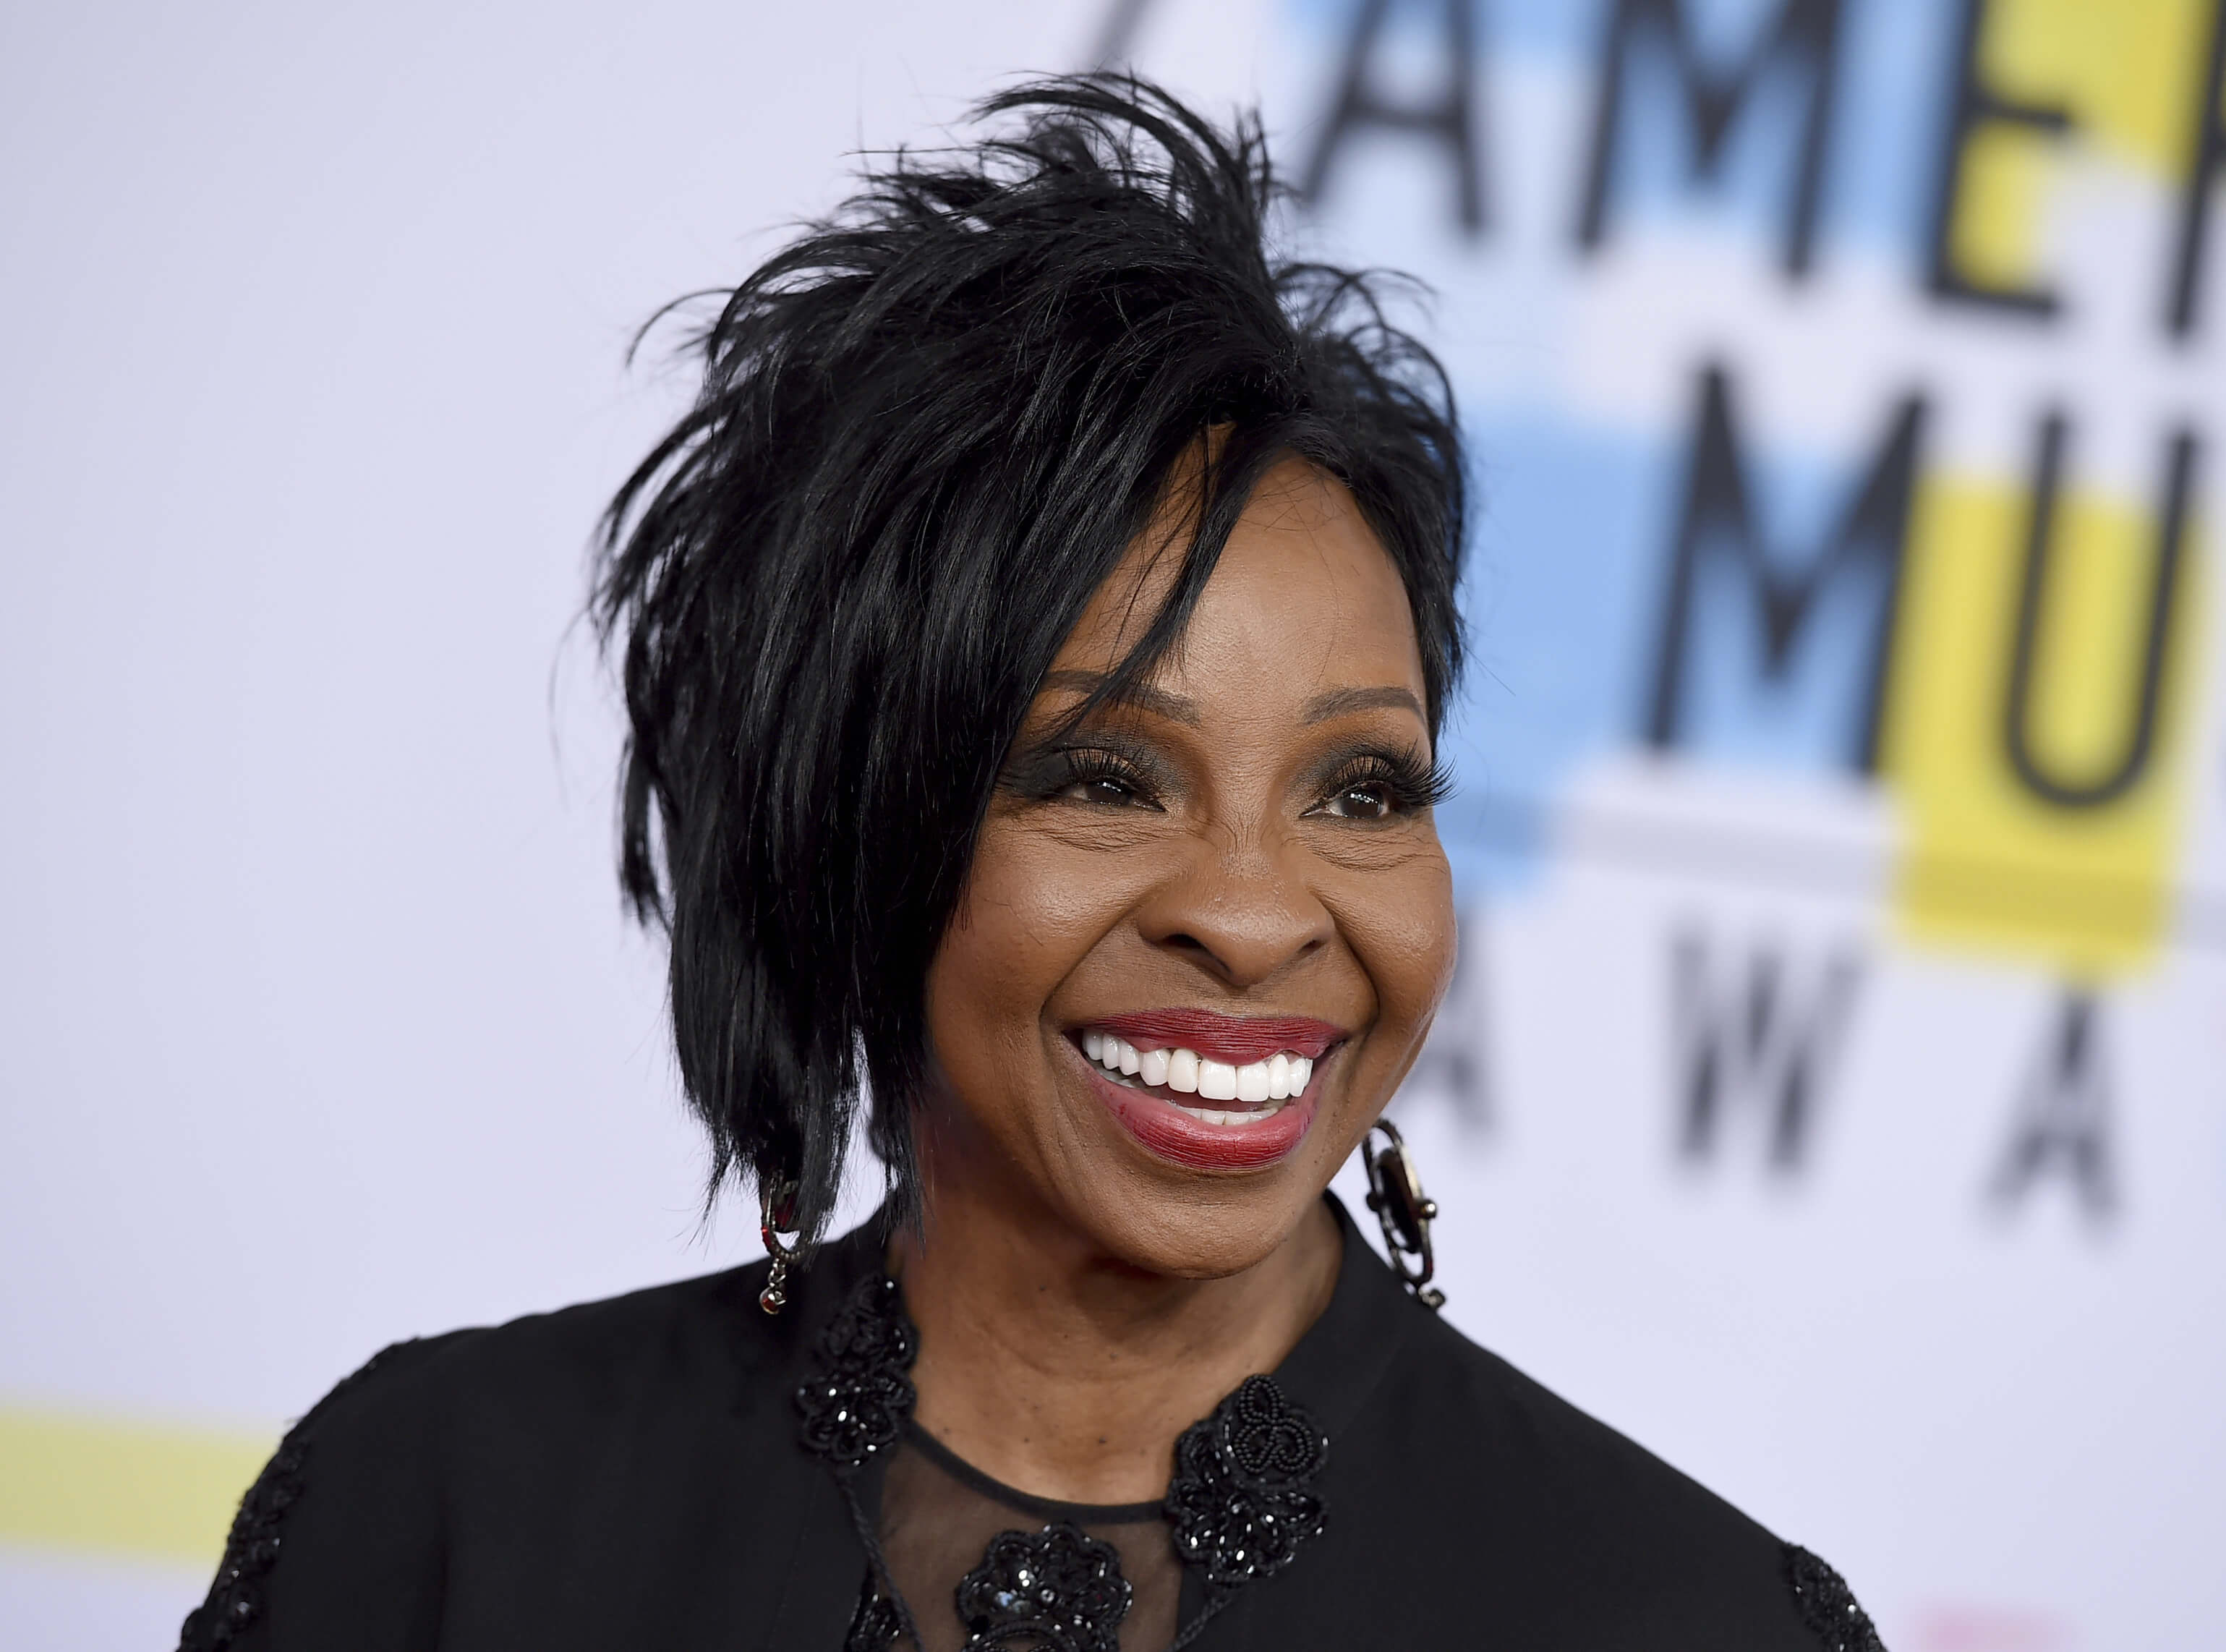 Gladys Knight arrives at the American Music Awards in Los Angeles on Oct. 9, 2018.